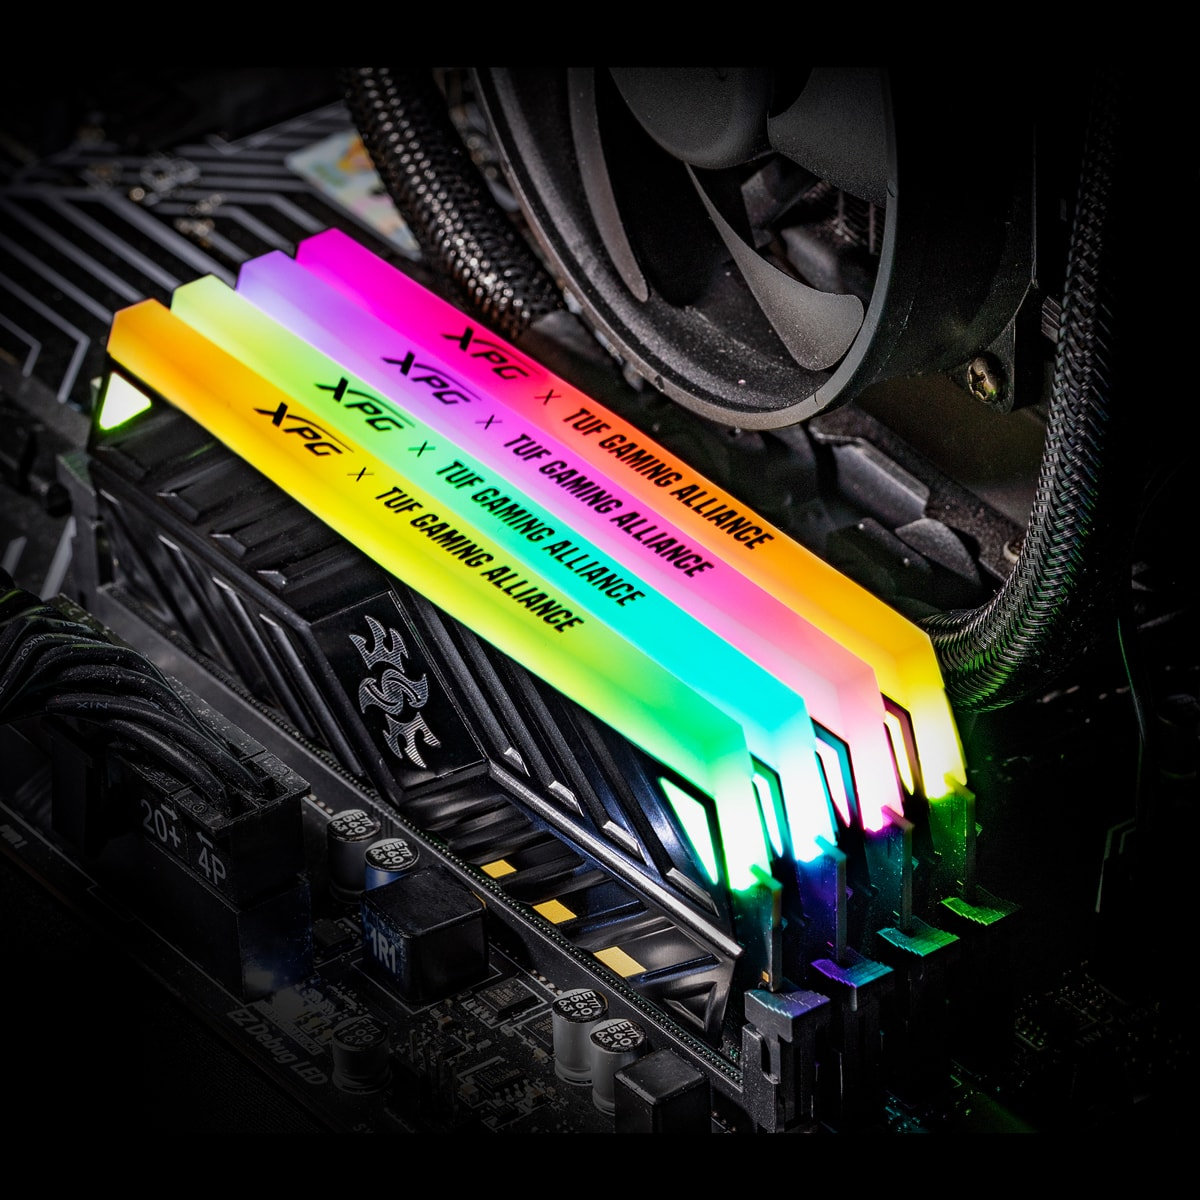 SPECTRIX D41 DDR4 RGB Memory Module | Description | ADATA